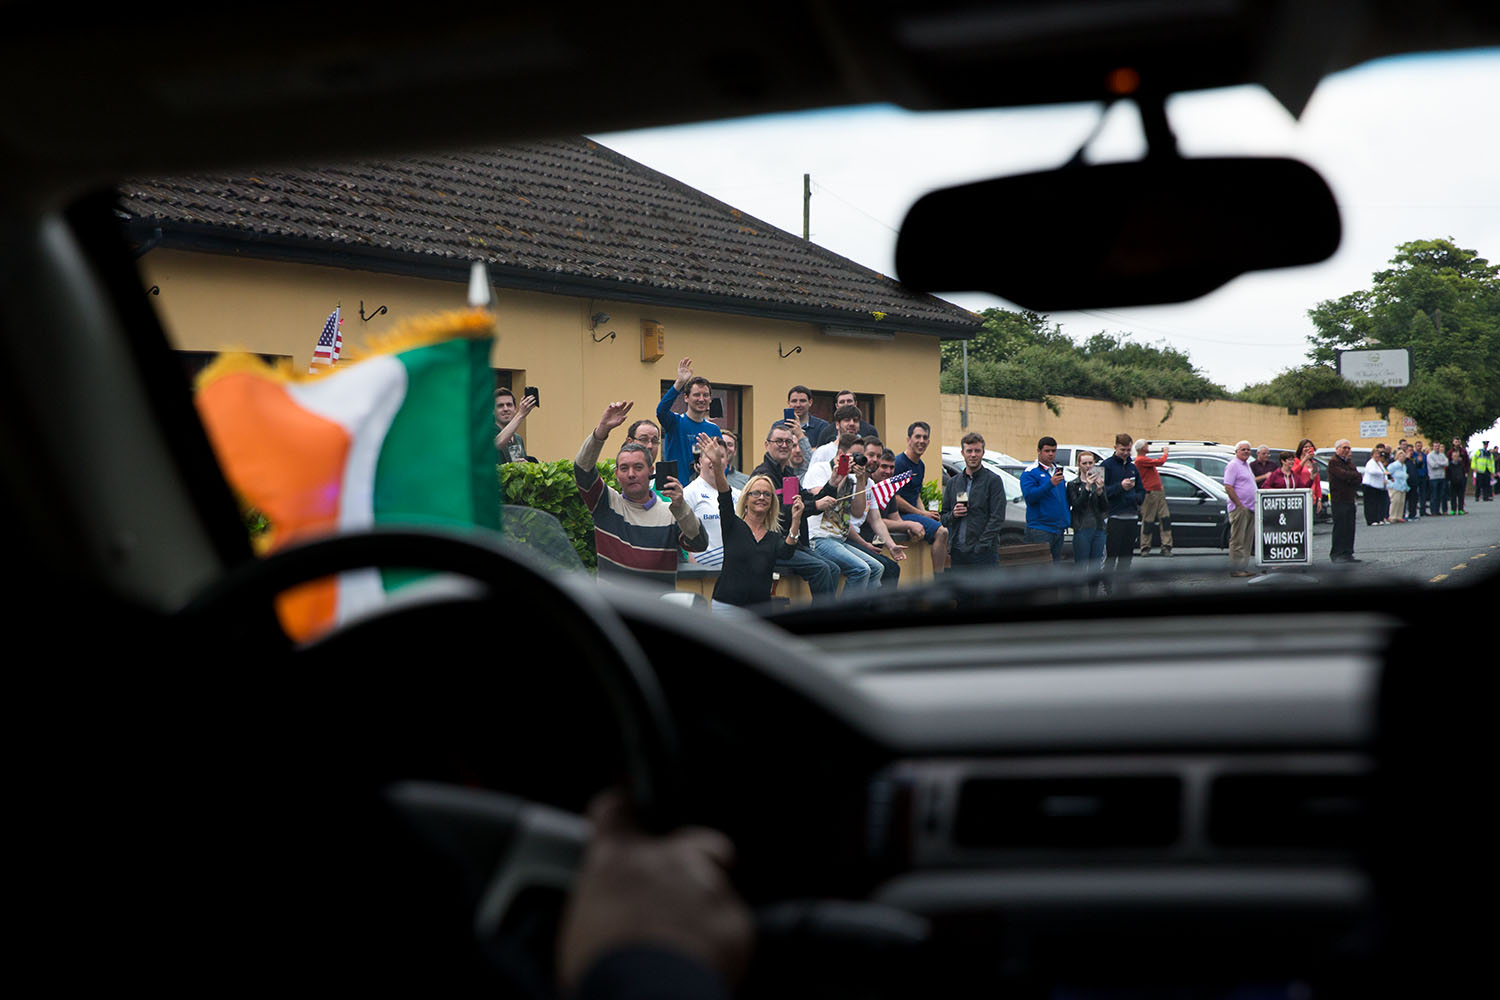 People waving american flags outside a pub along the motorcade route in County Louth, Ireland, June 25, 2016. (Official White House Photo by David Lienemann)